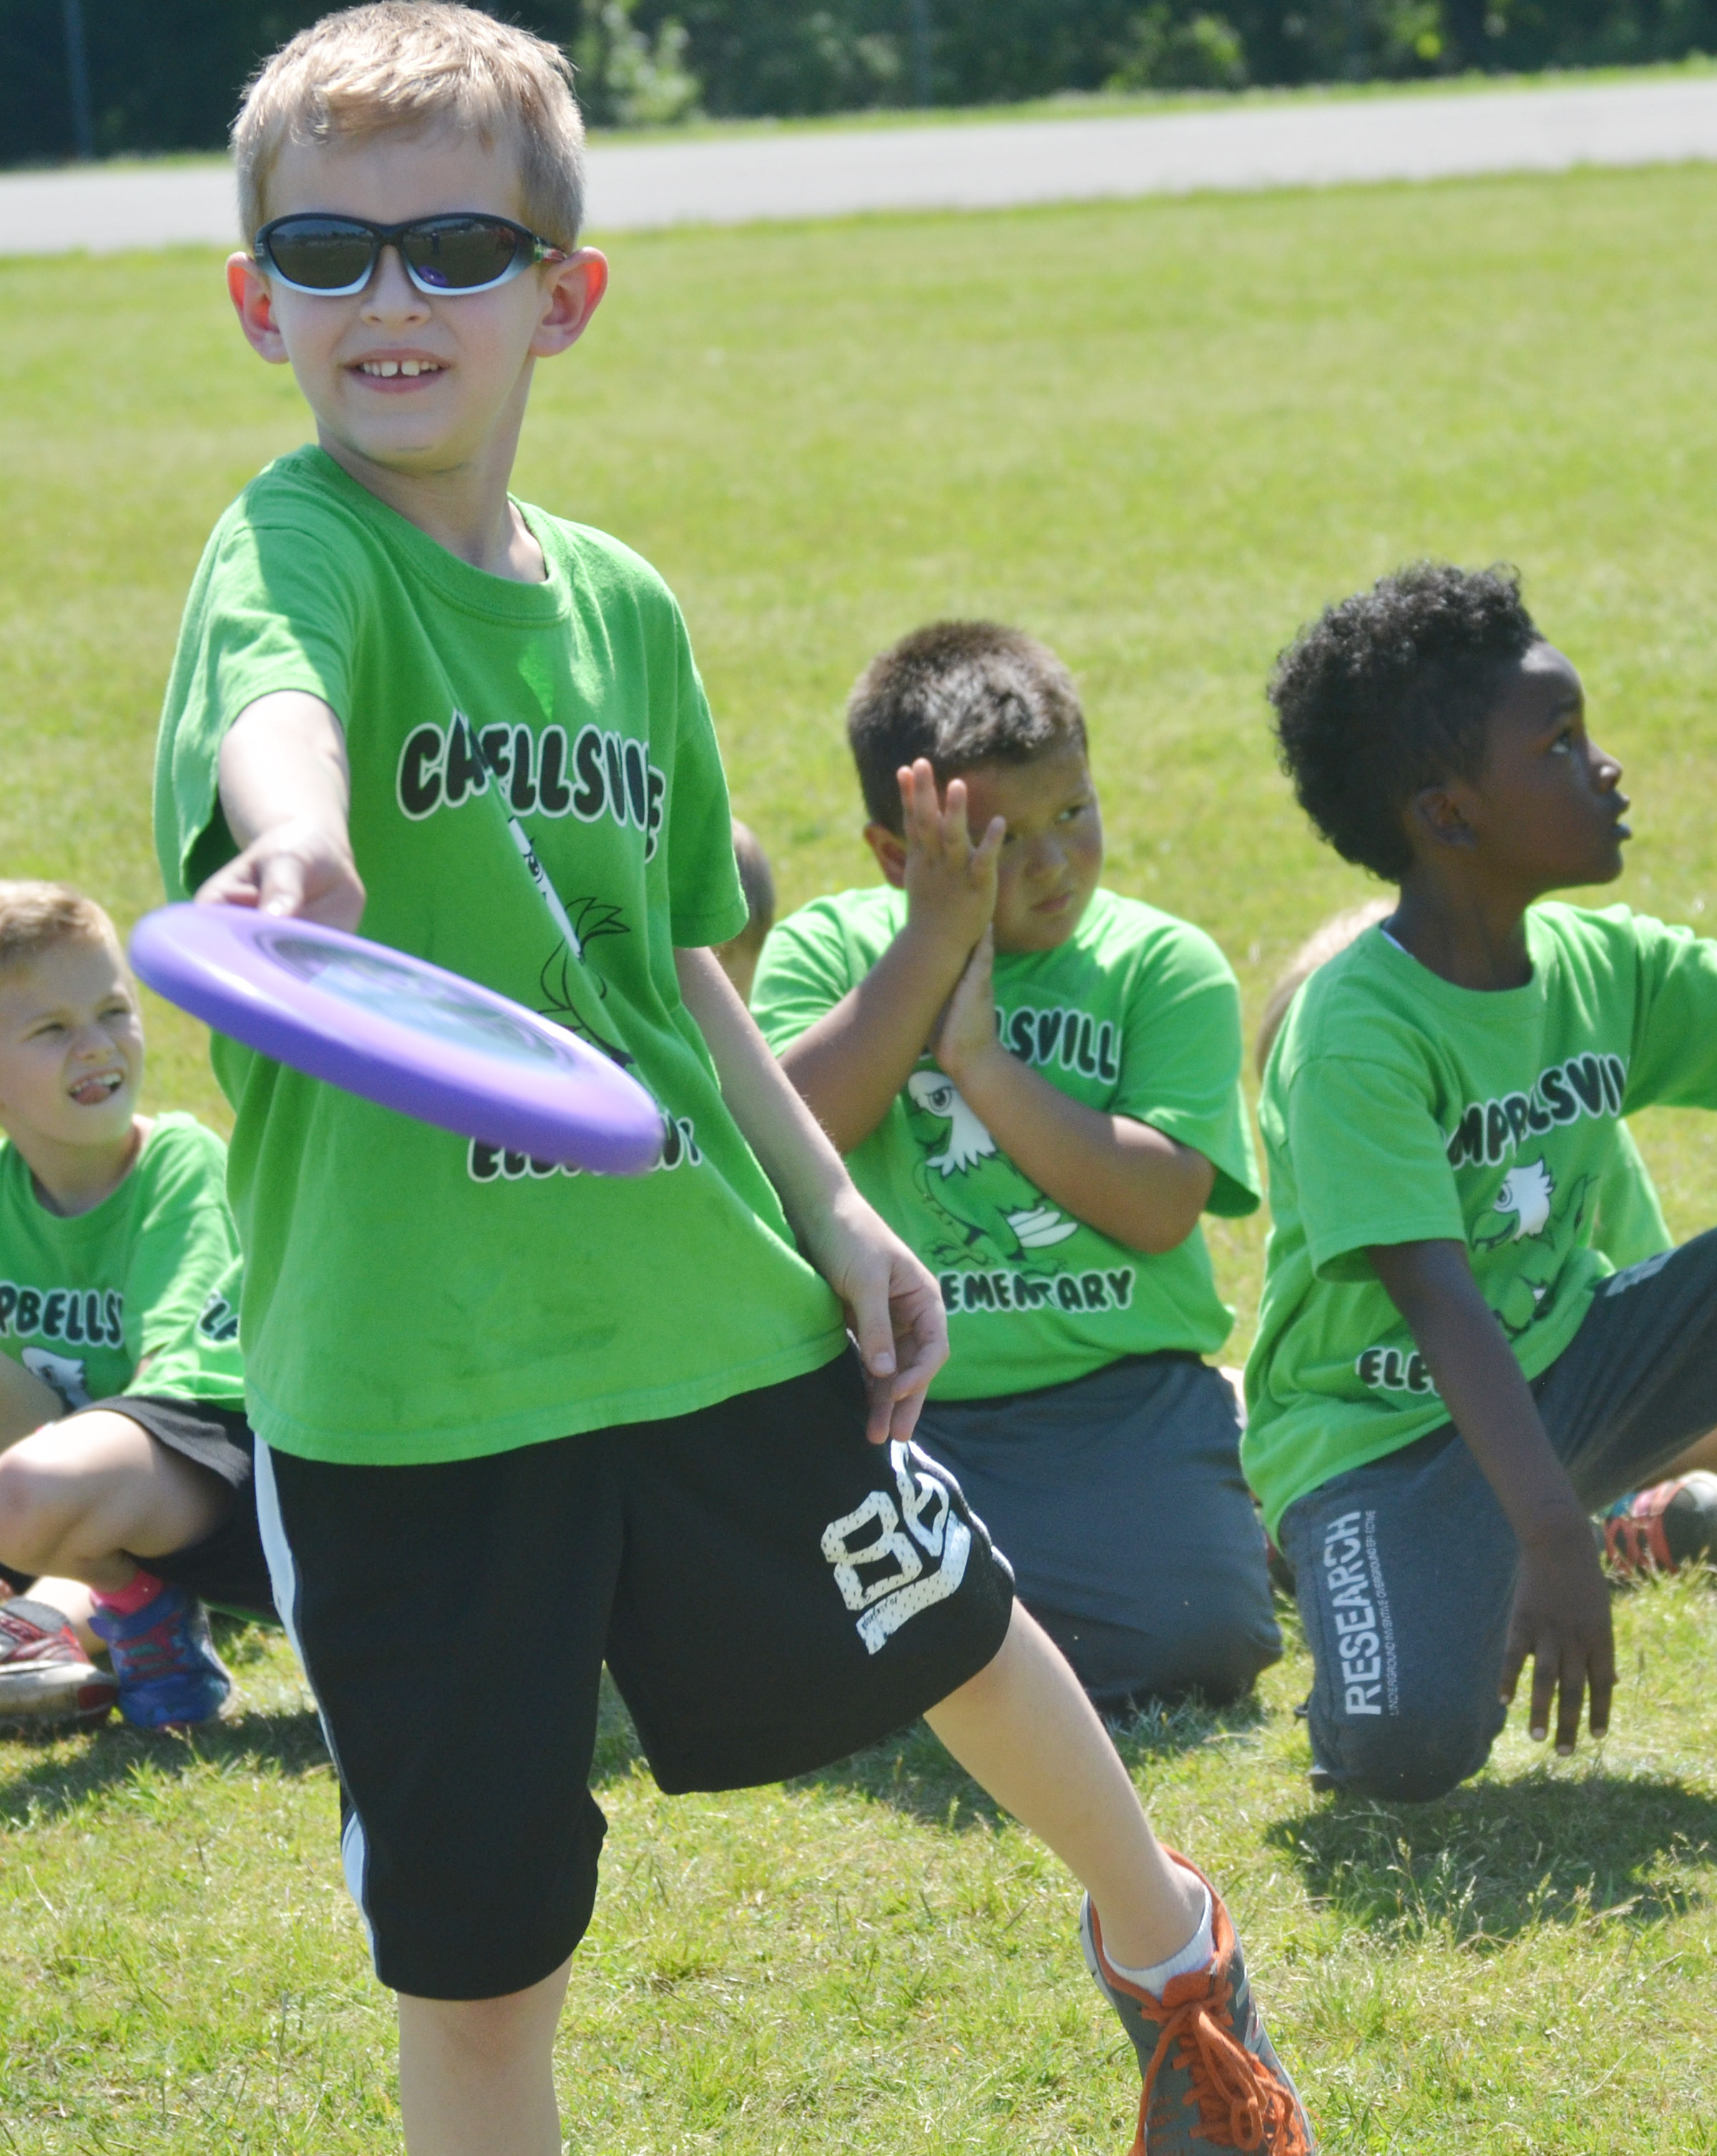 CES first-grader Logan Weddle throws a Frisbee.